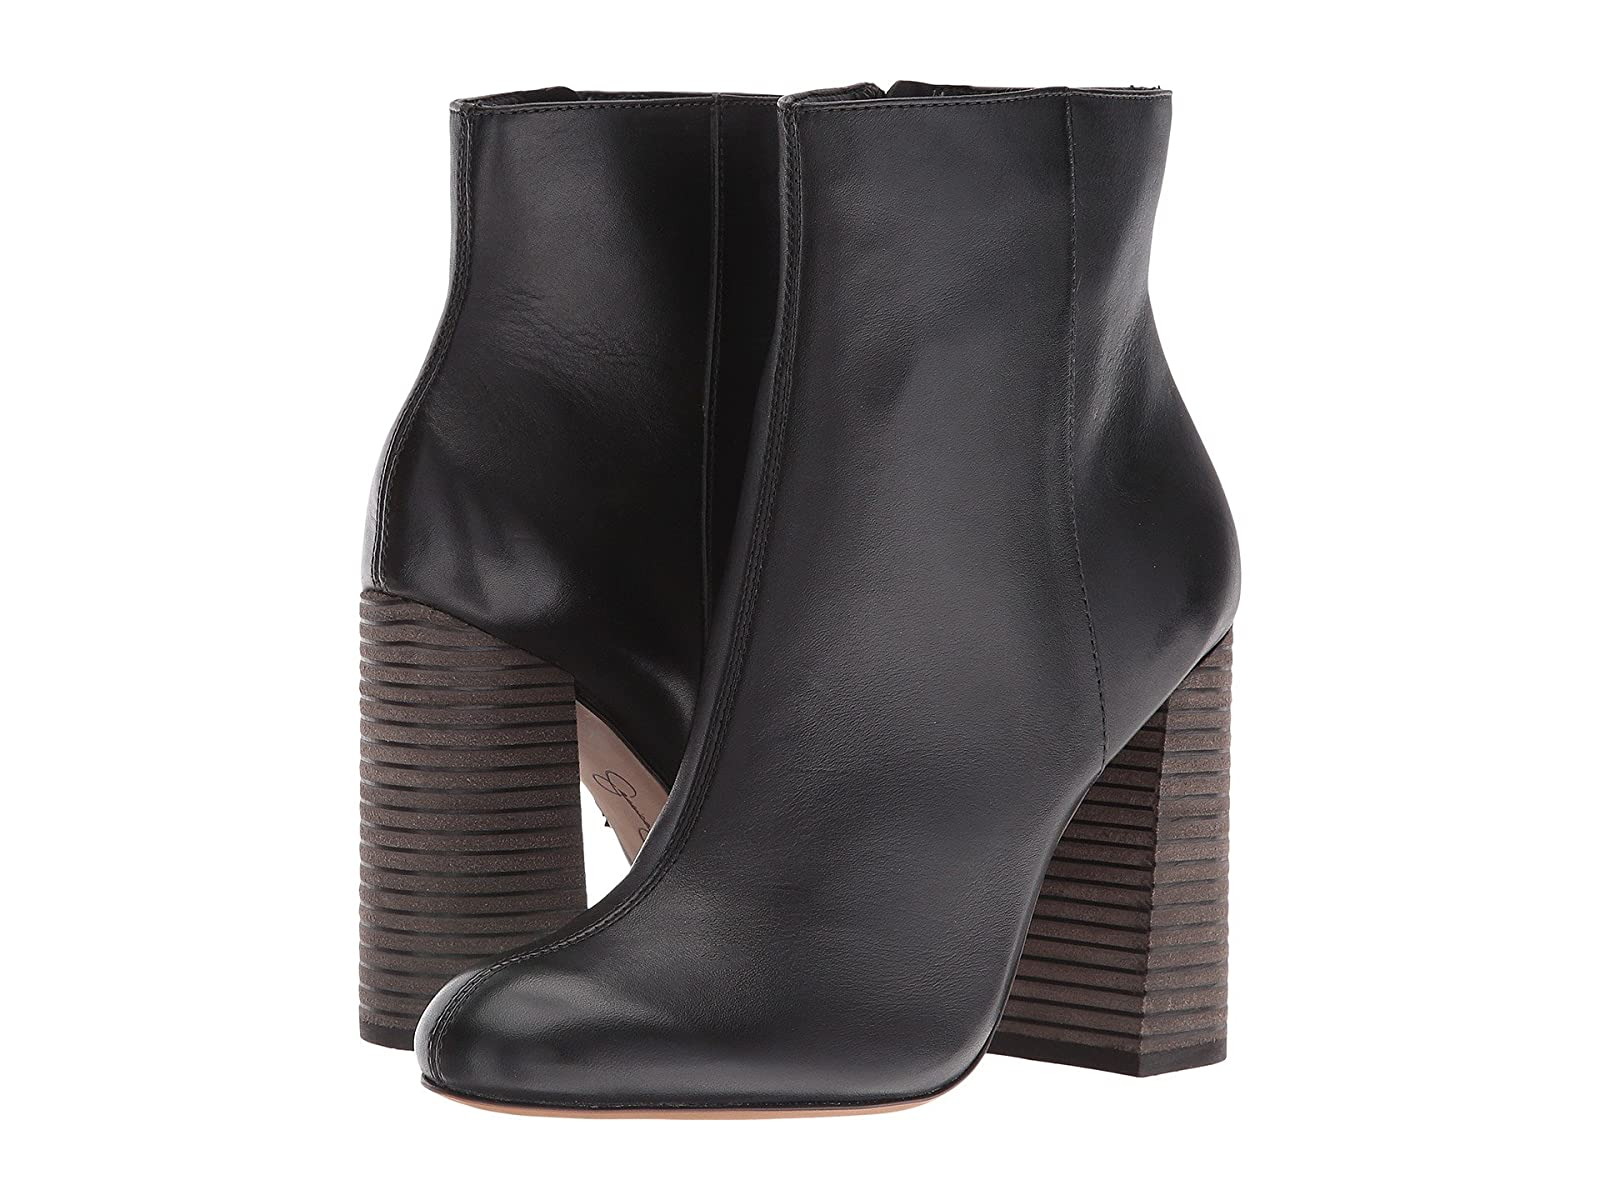 Jessica Simpson ChressaCheap and distinctive eye-catching shoes